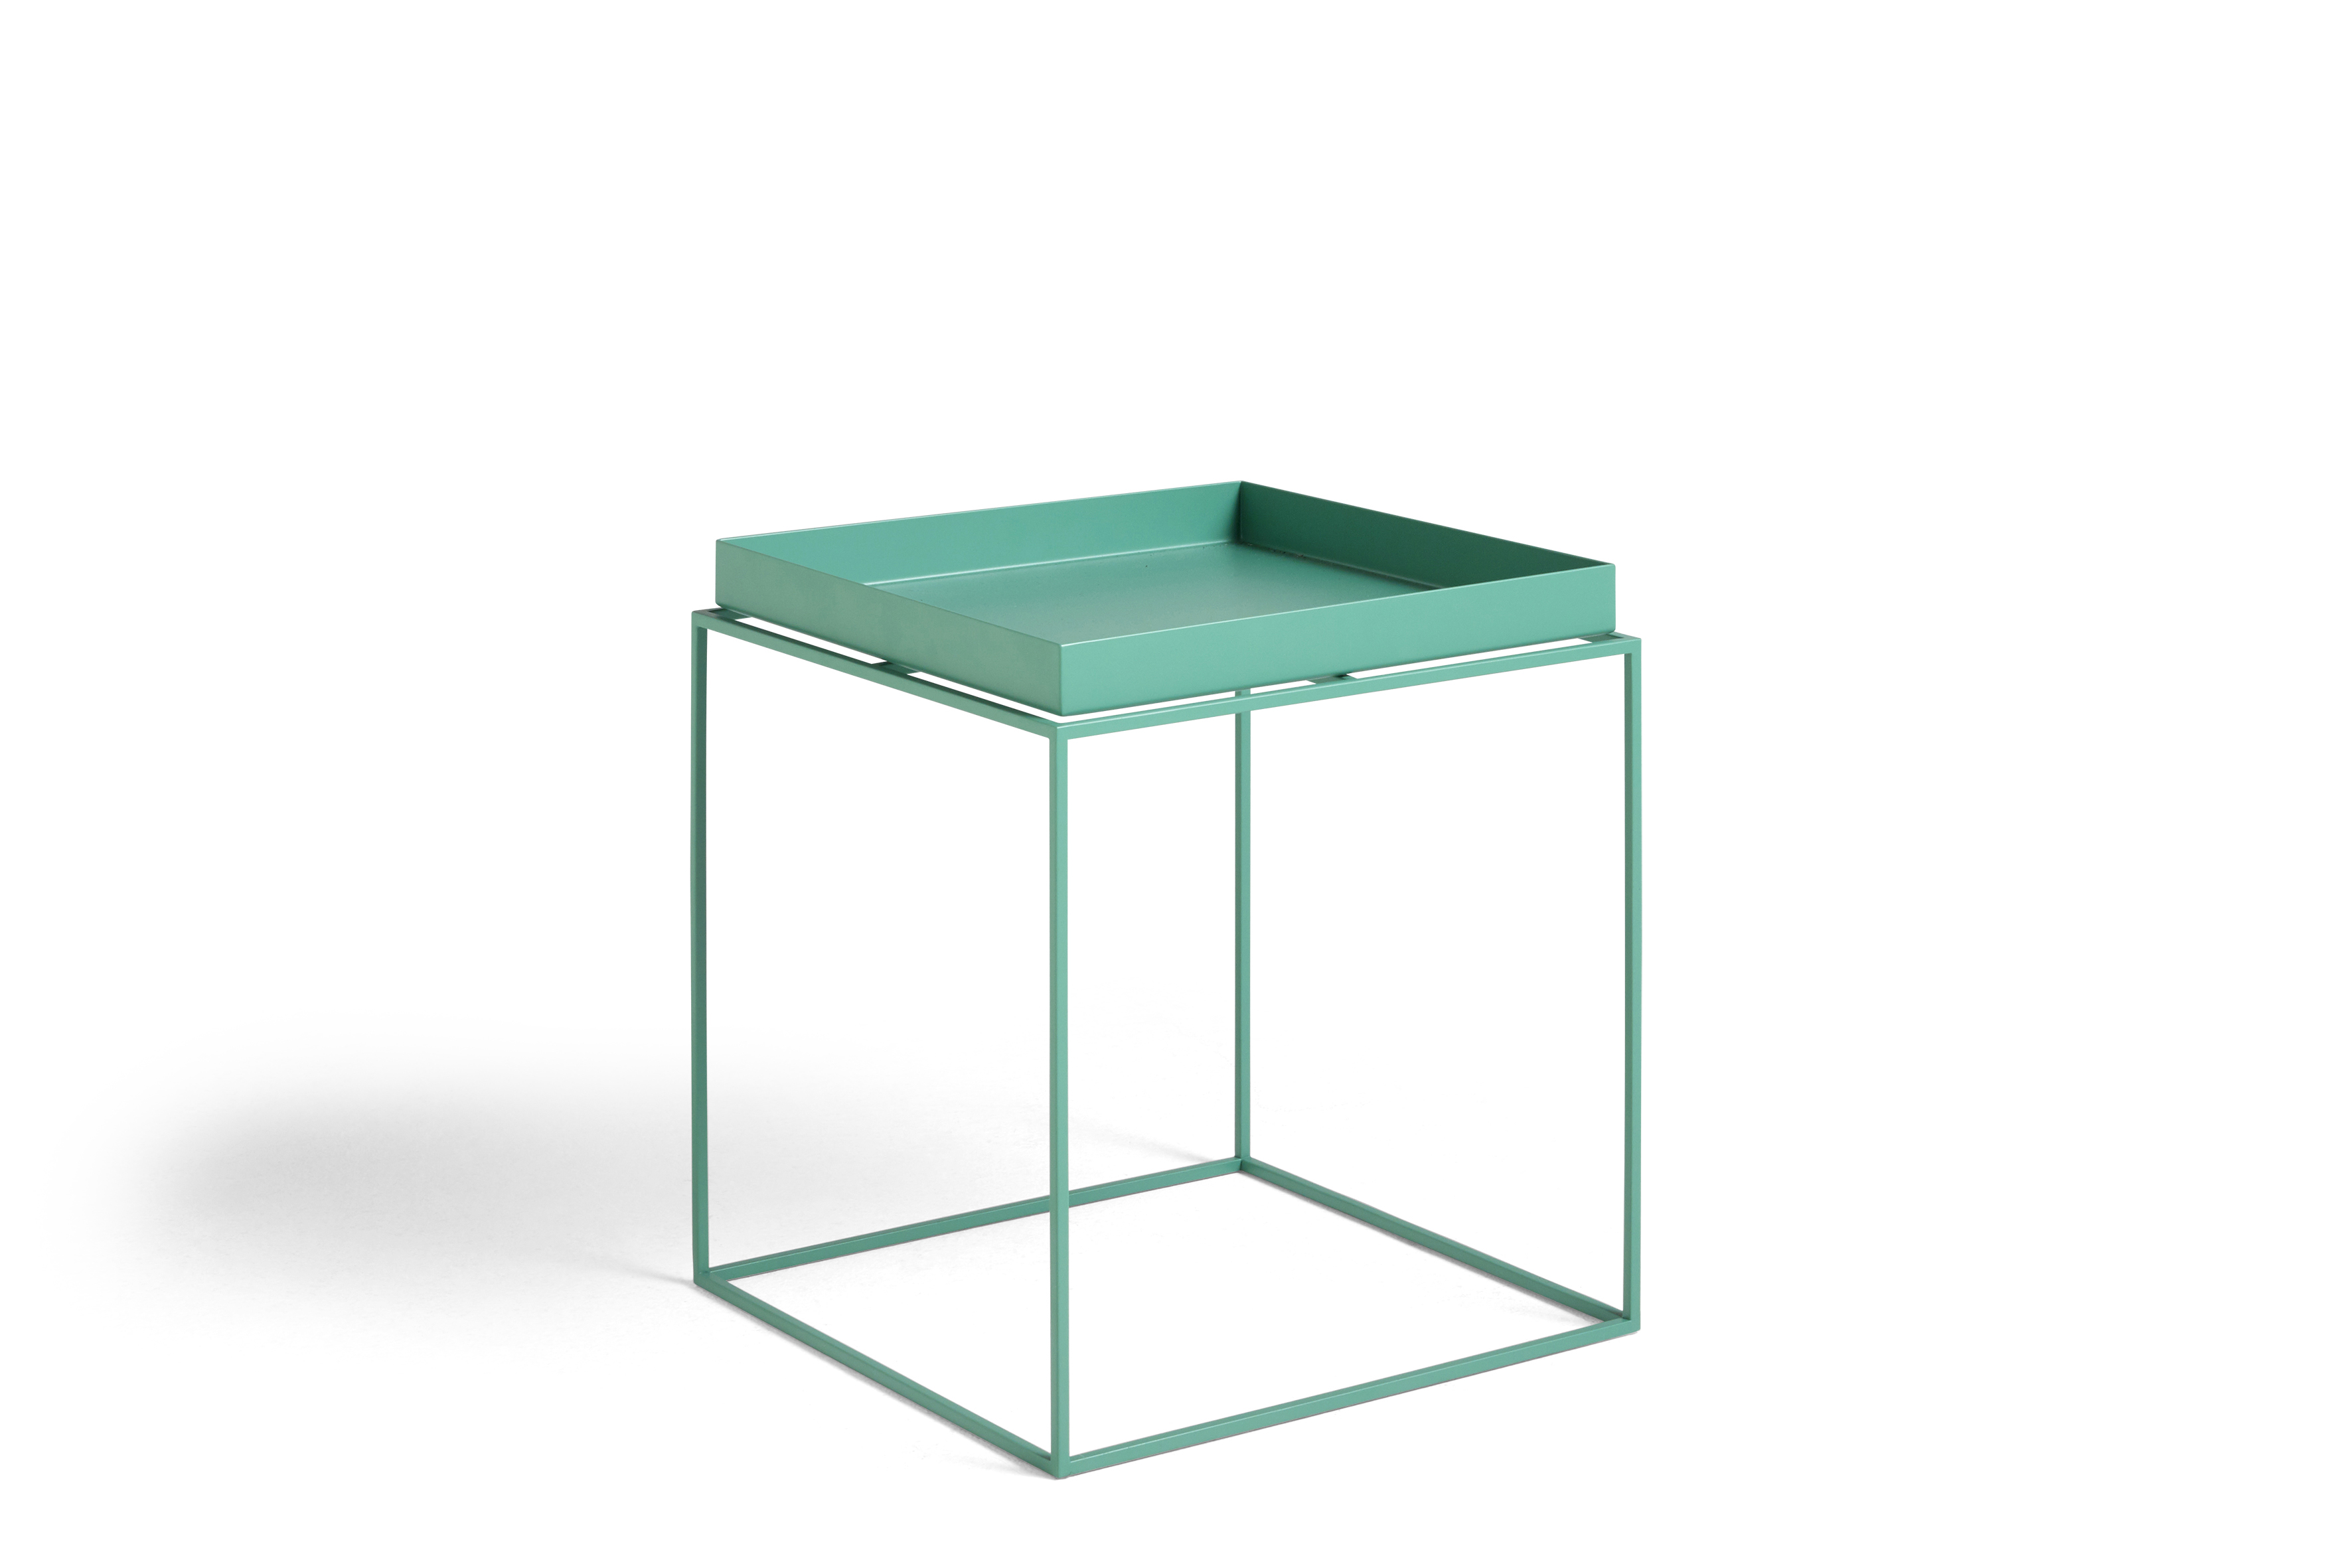 HAY - Tray Table 40 x 40 cm - Pepperment Green (1025033019000)